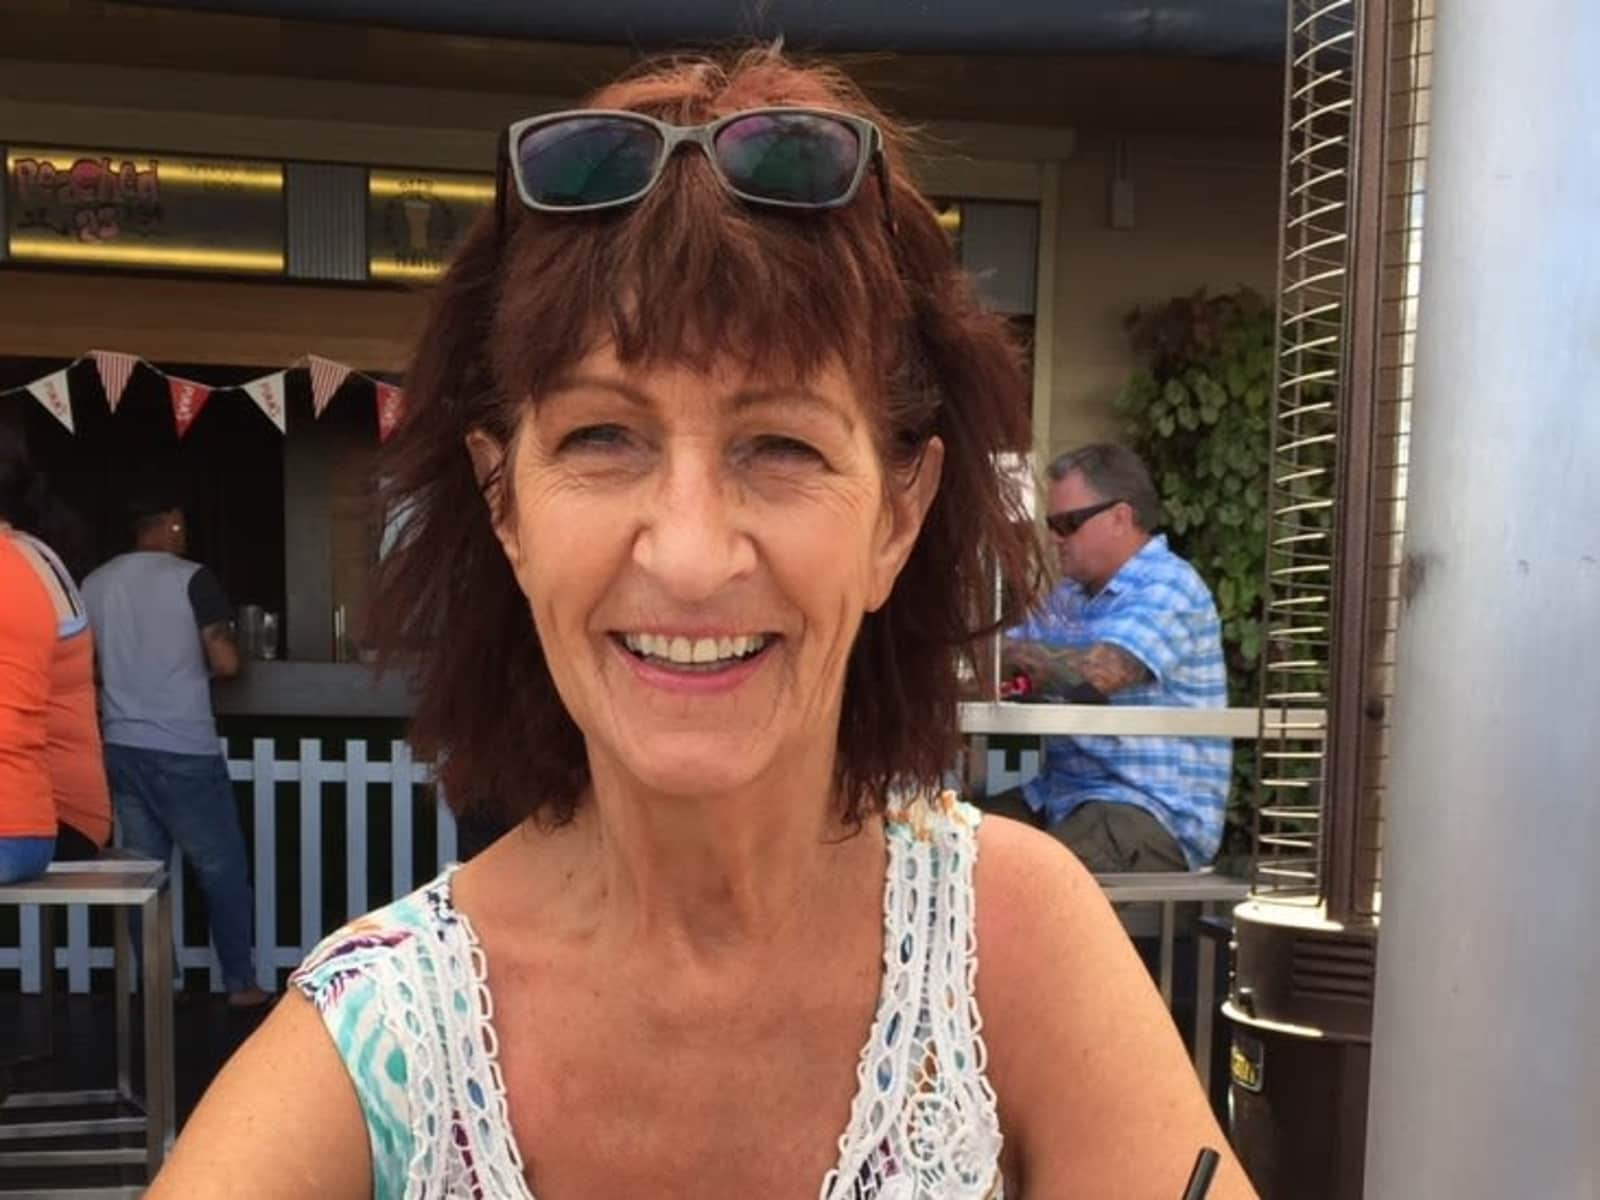 Helen from Newcastle, New South Wales, Australia